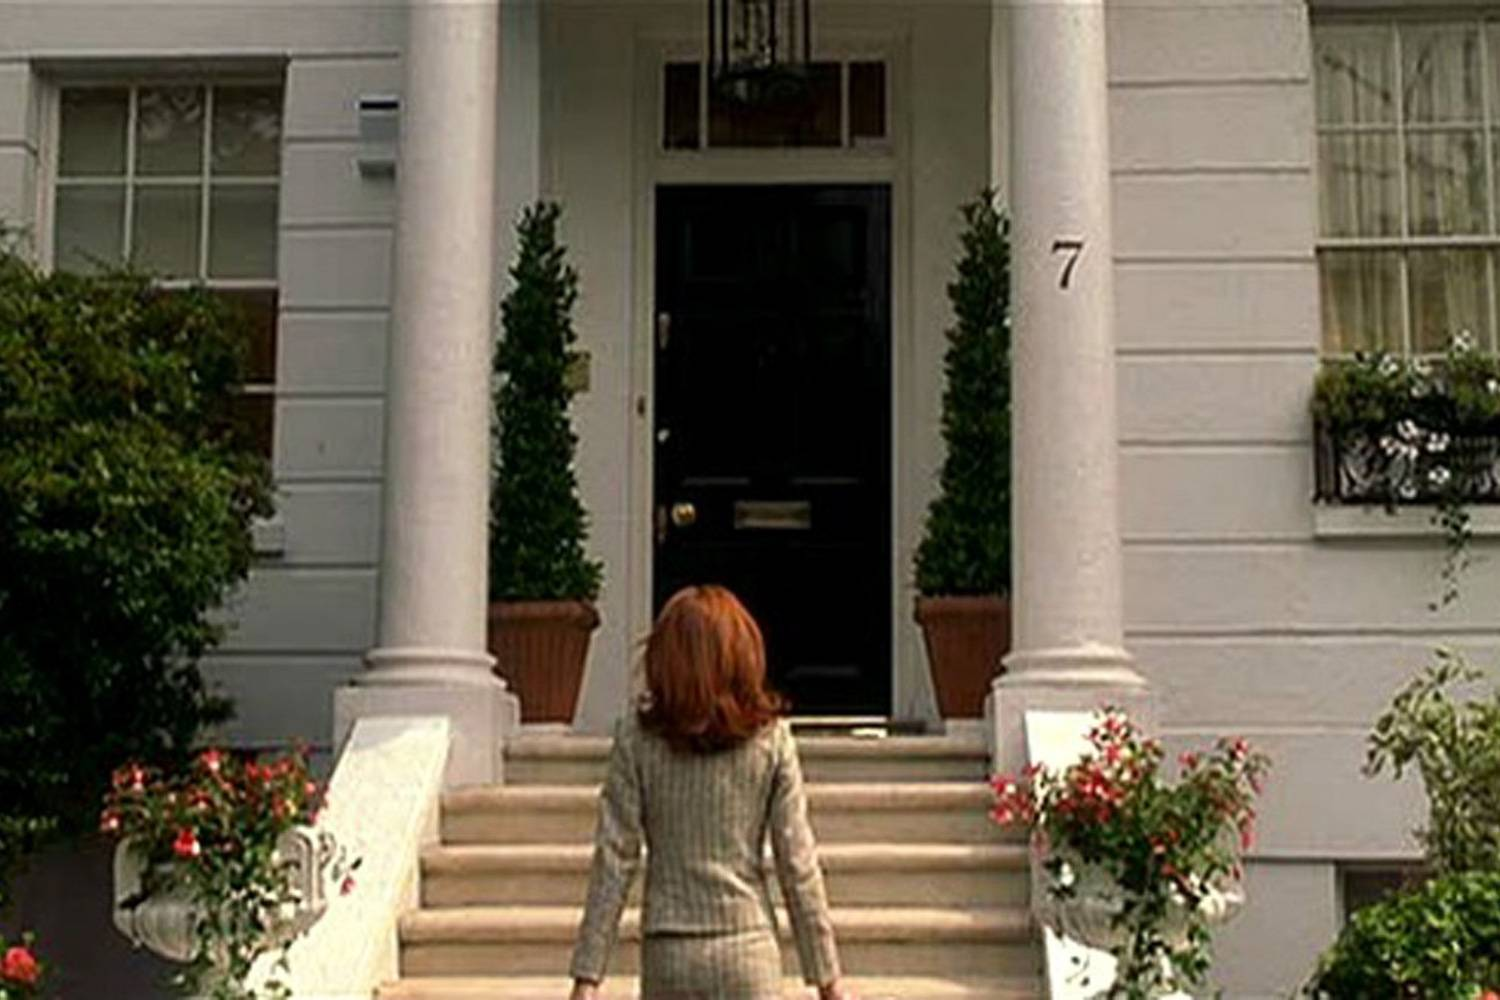 Image still of actress Lindsay Lohan in front of the London home in The Parent Trap.